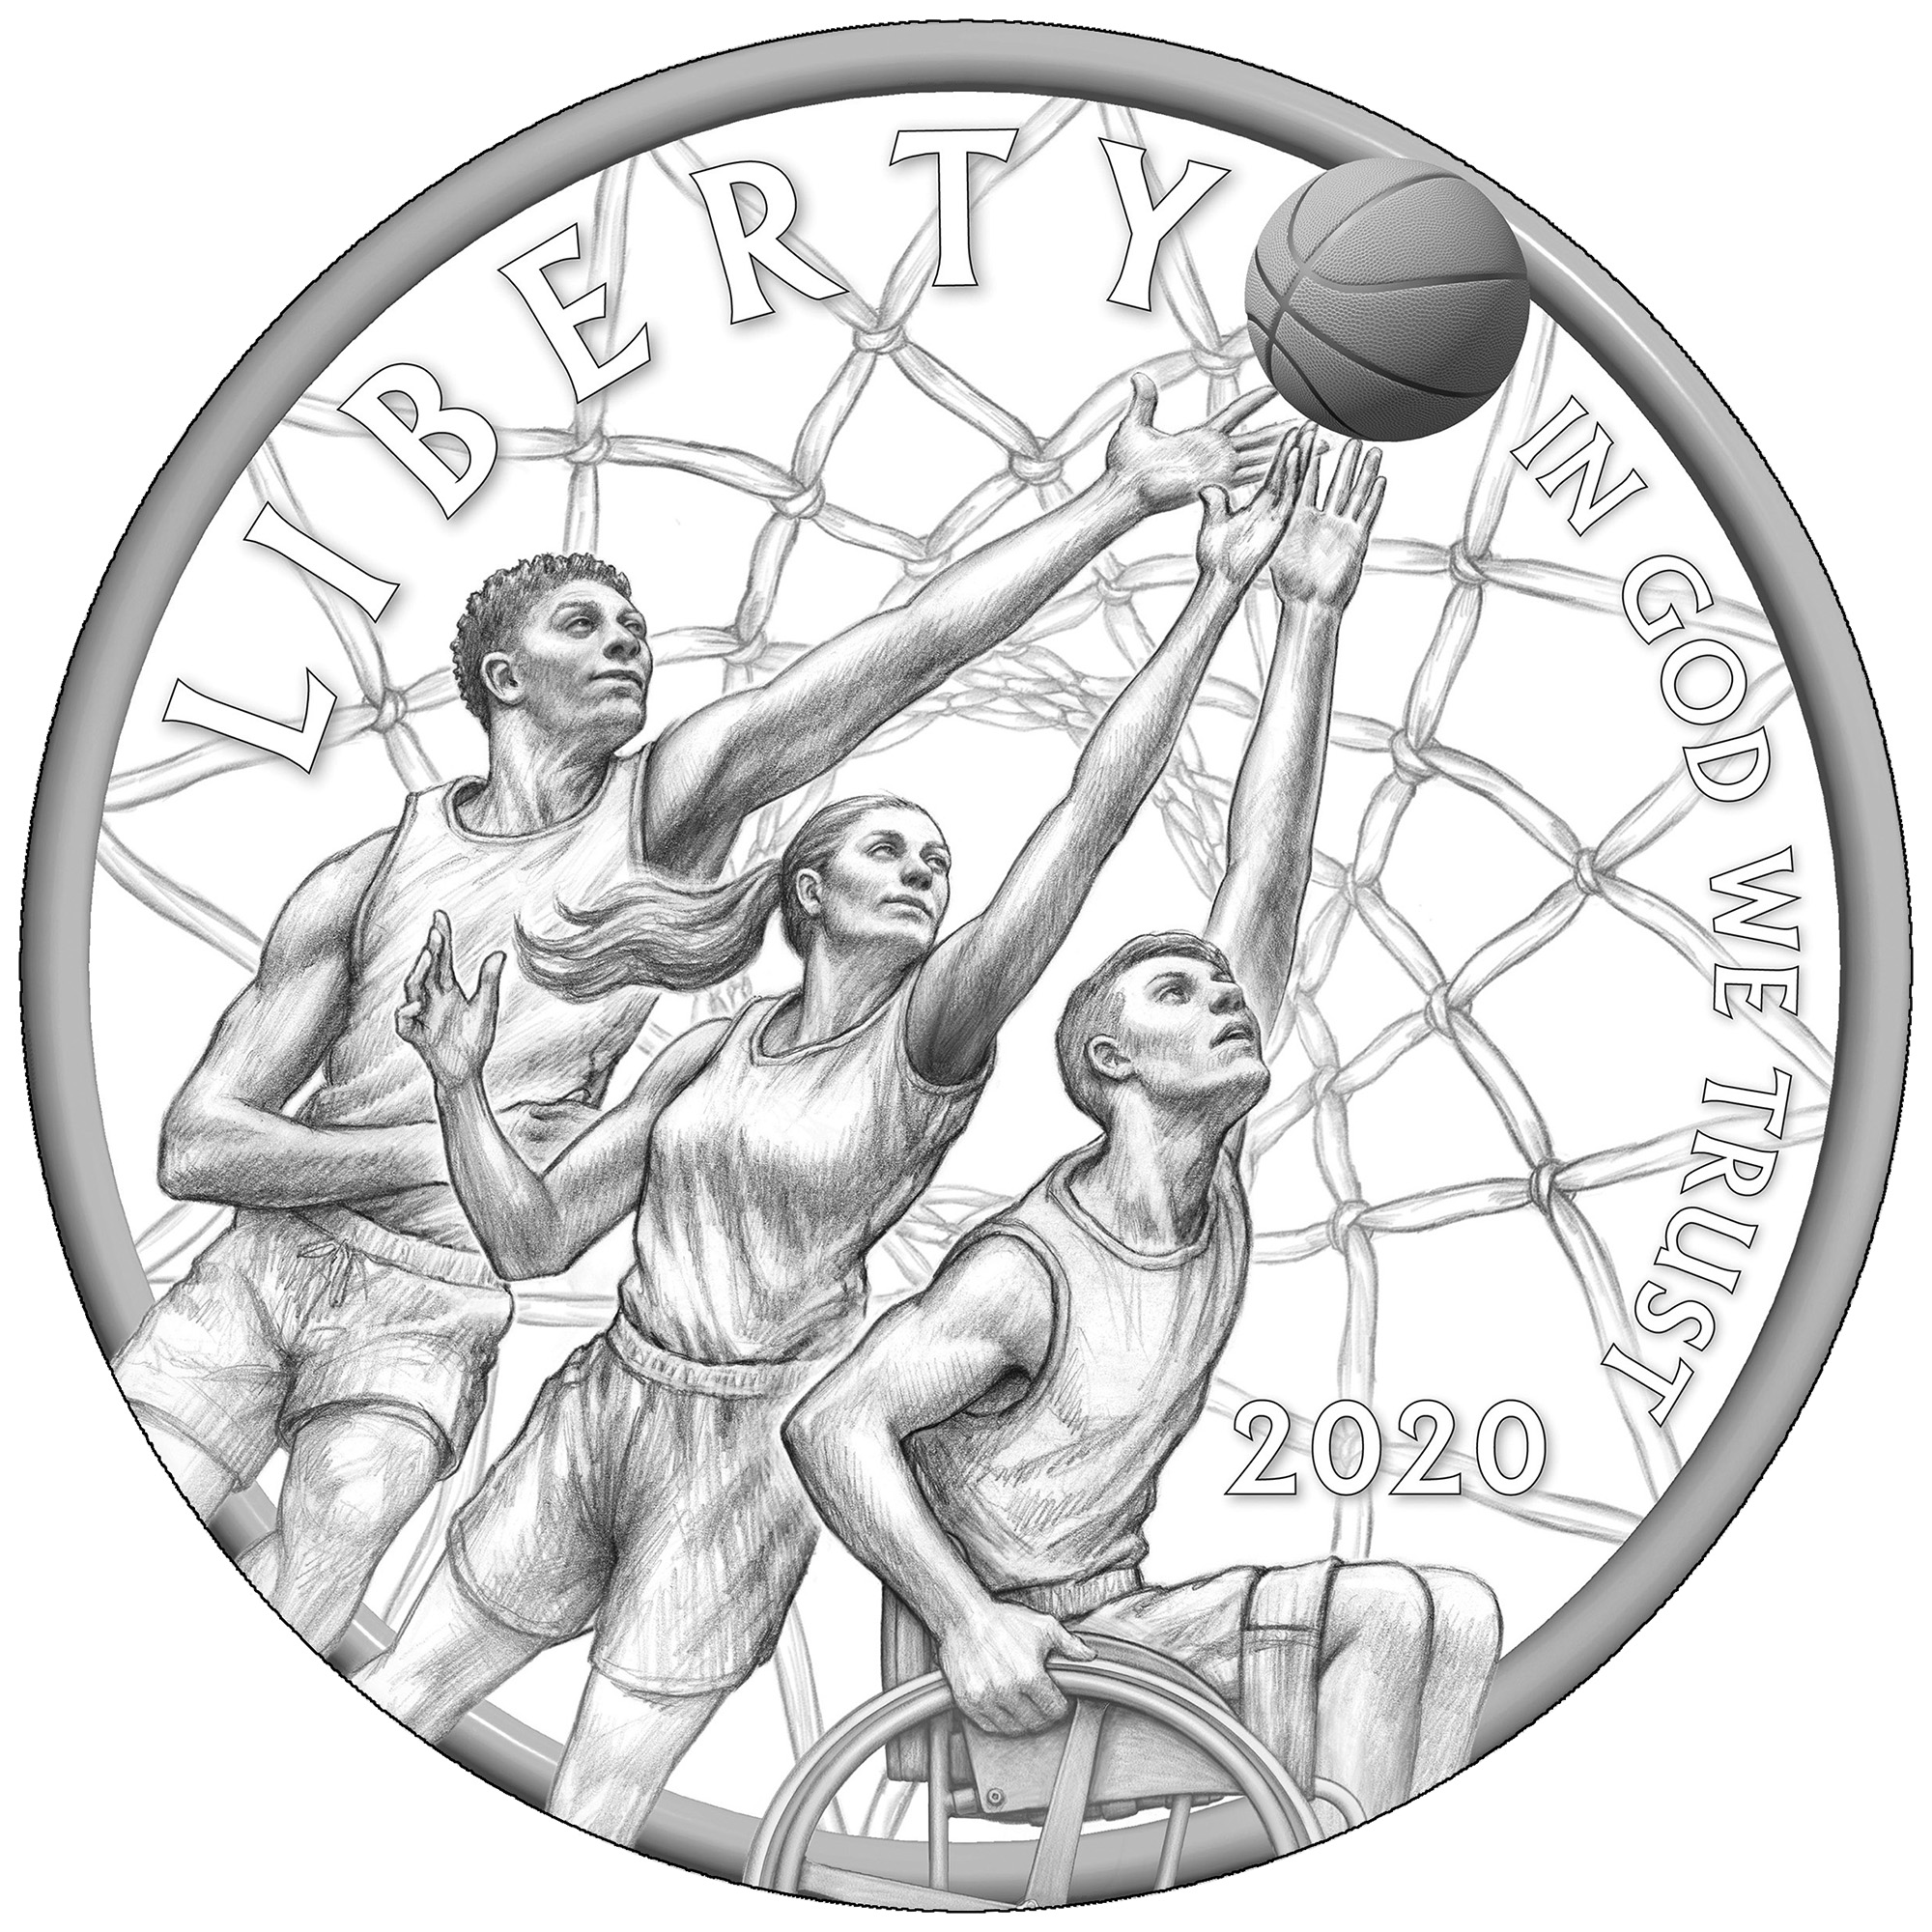 2020 Basketball Hall of Fame Commemorative Coin Line Art Obverse